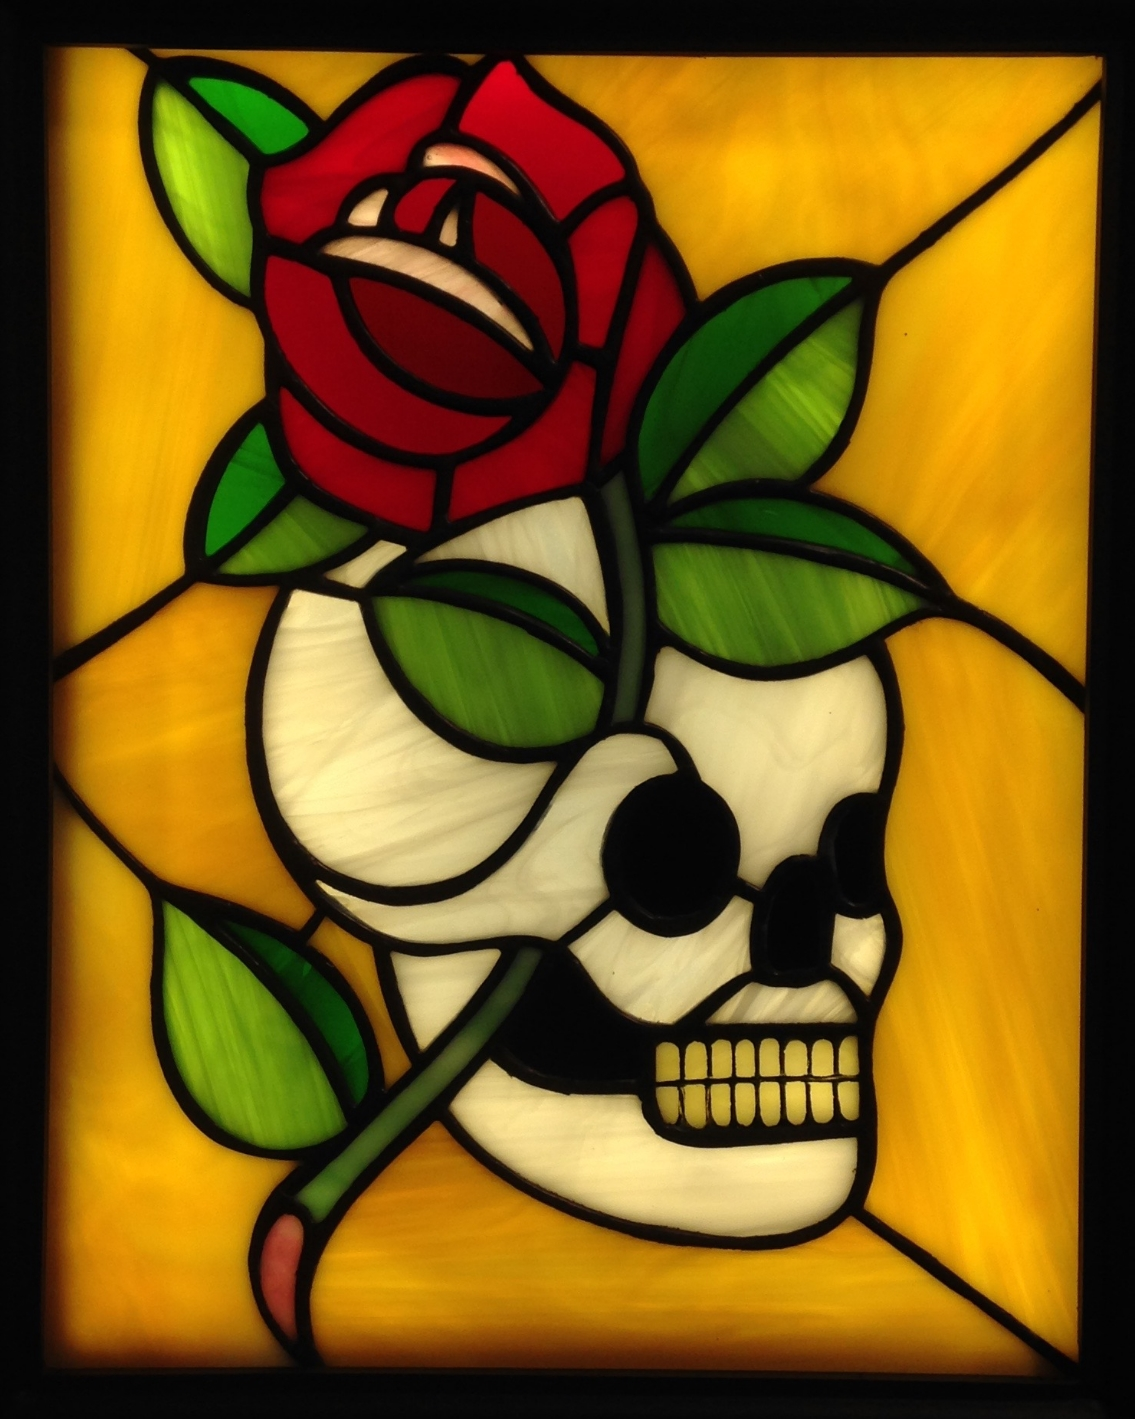 """SUM QUOD ERIS, FUI QUOD SIS"" 11""X14"" (SIZE OF GLASS ONLY) Foiled stained glass, kiln fired glass paint, & LED lights SOLD"